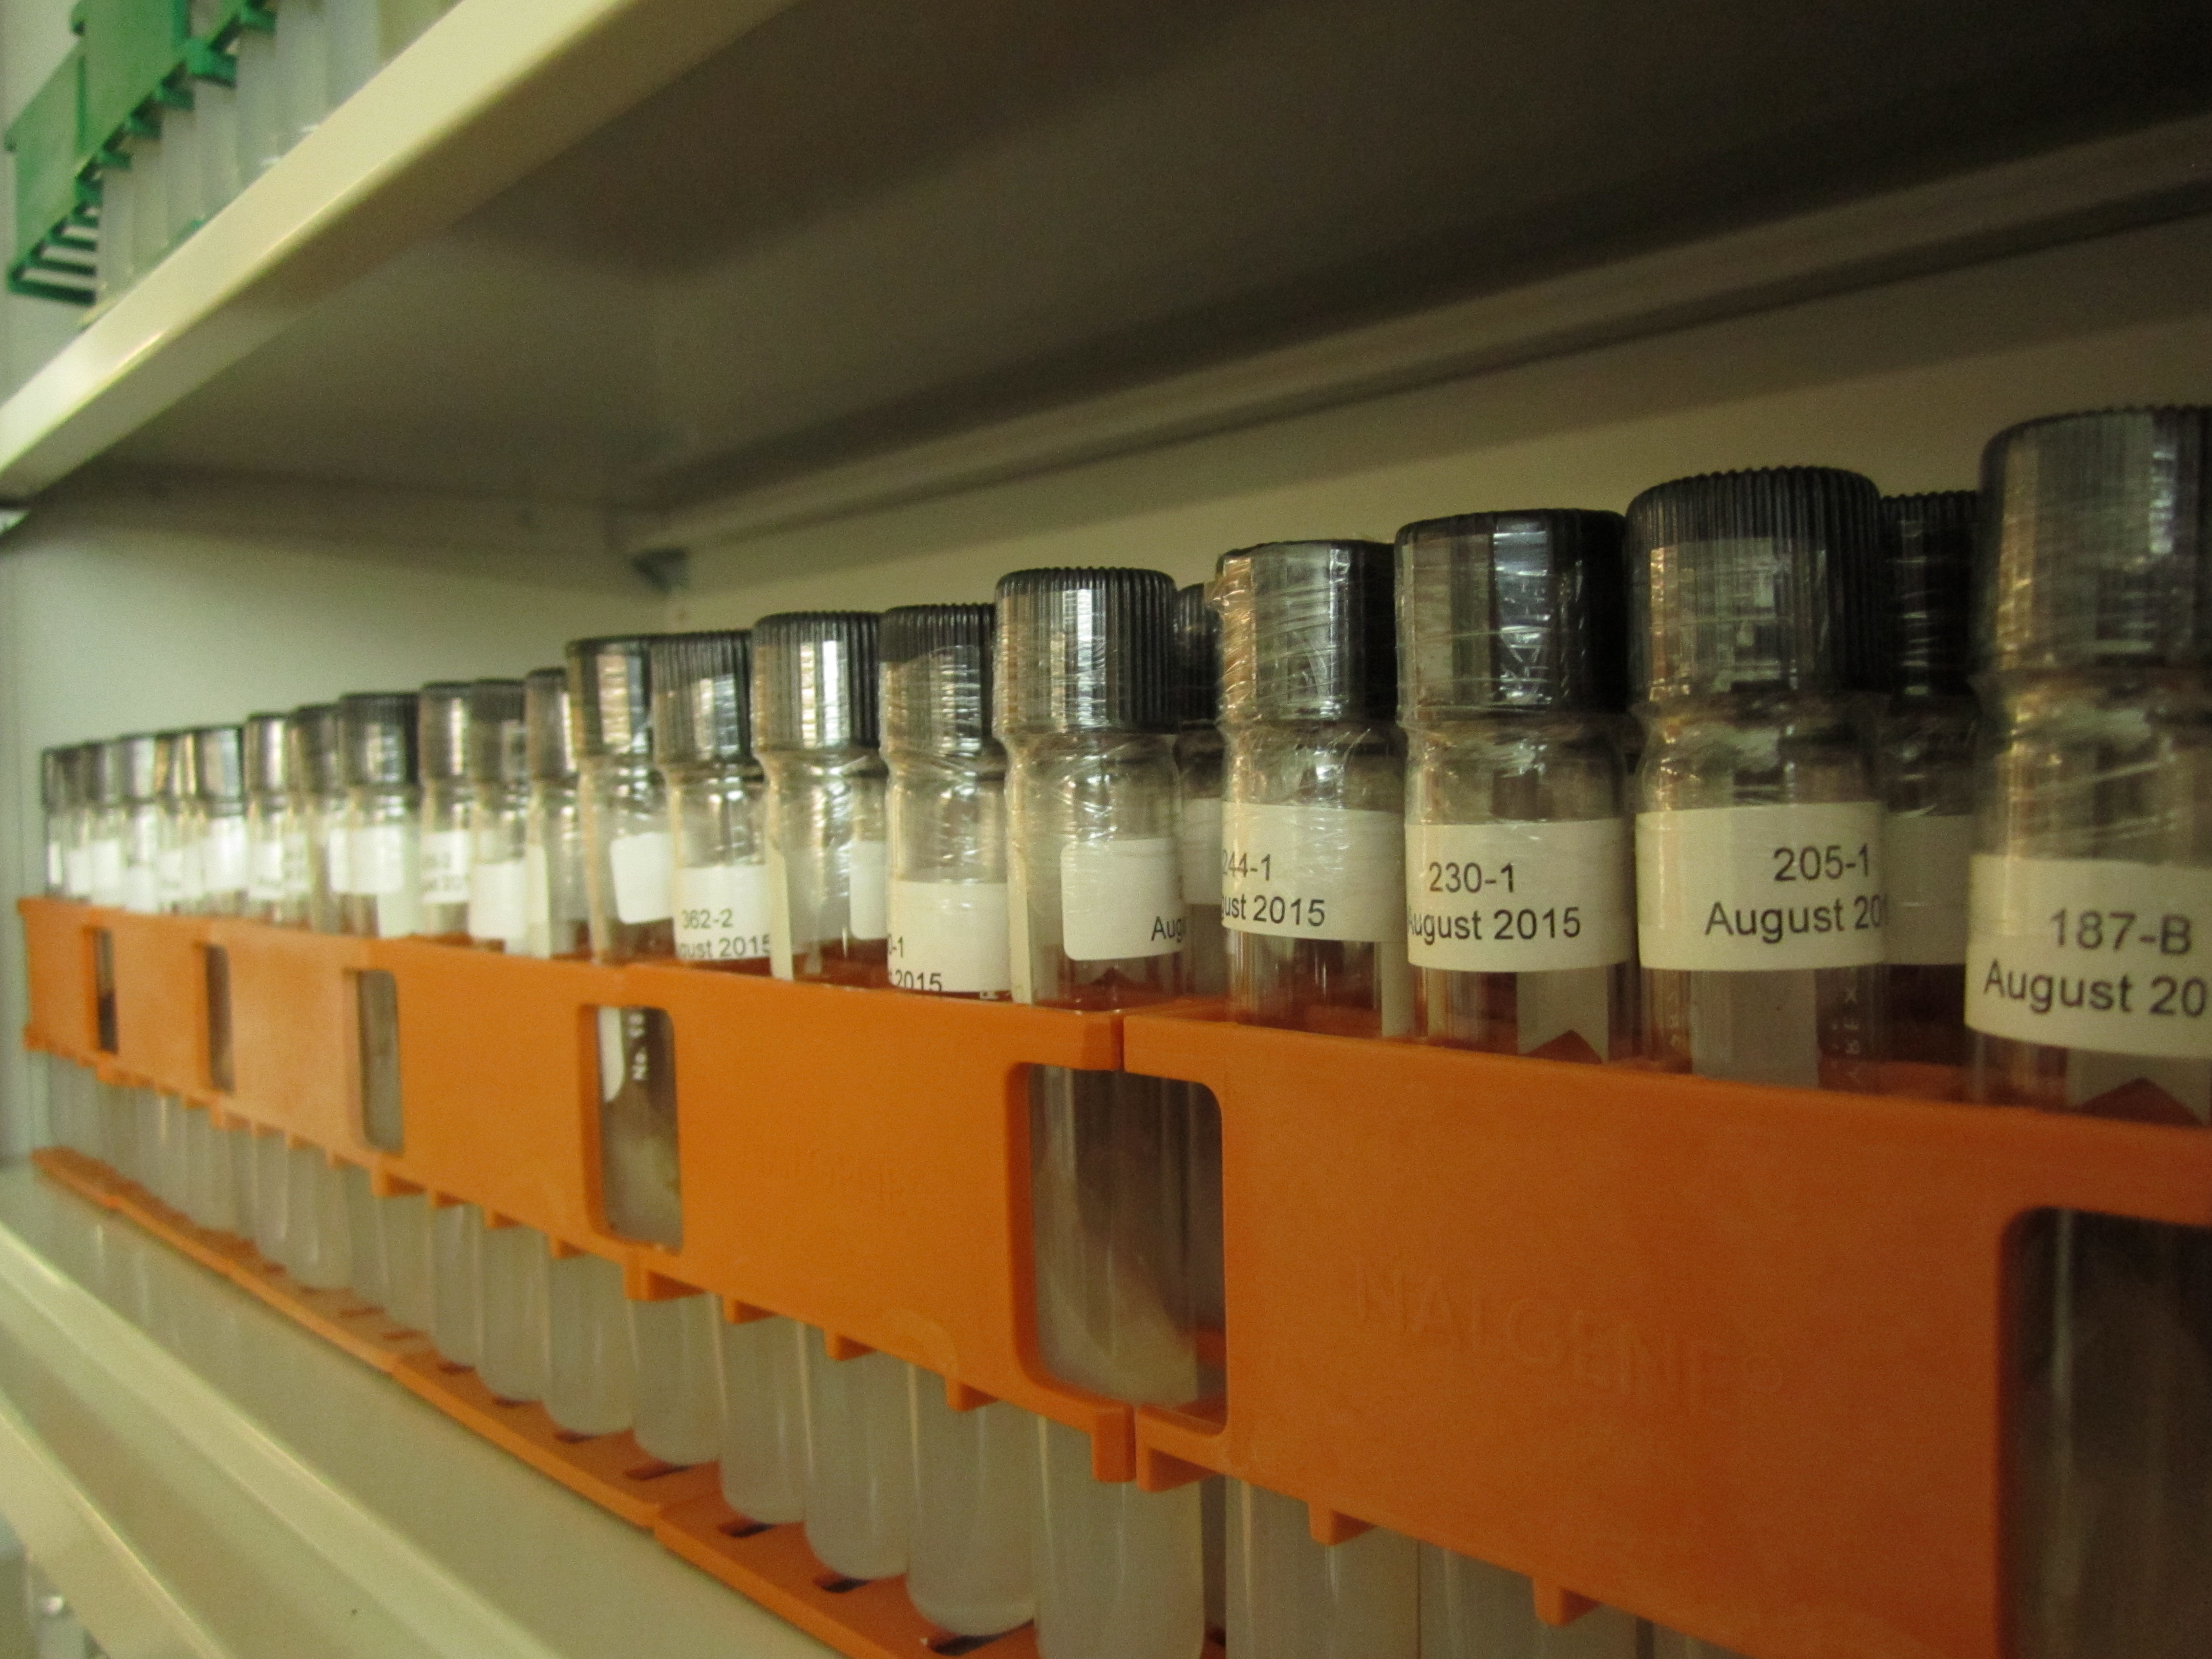 NAOCC's orchid symbiotic fungi collection